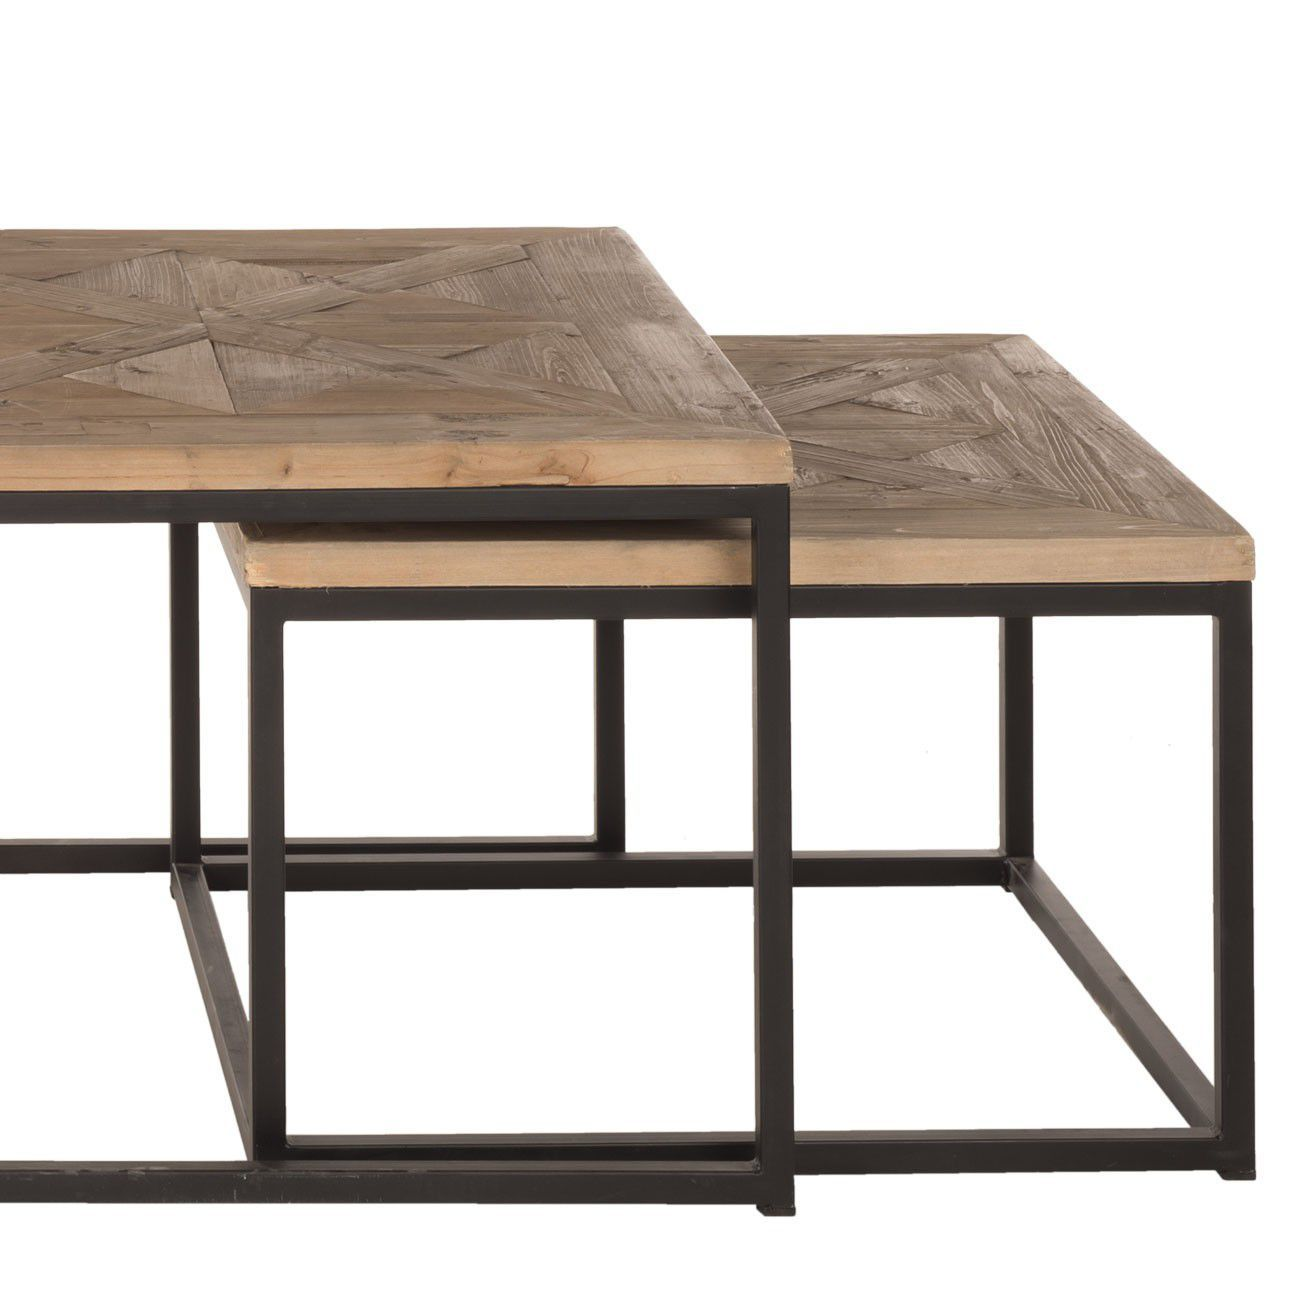 table basse metal et bois 1 id es de d coration int rieure french decor. Black Bedroom Furniture Sets. Home Design Ideas